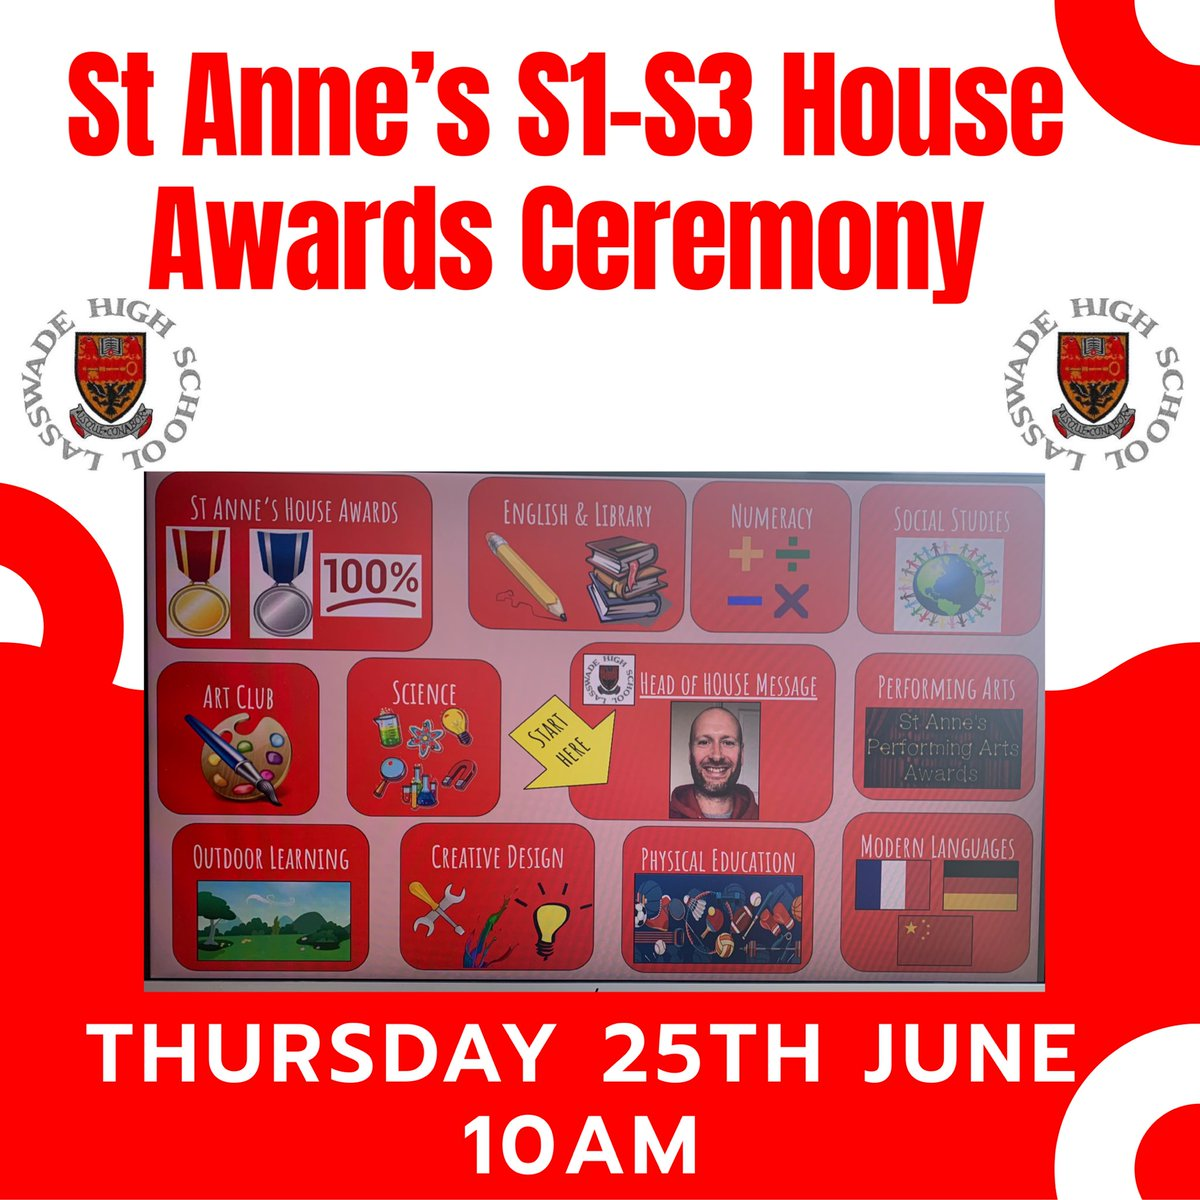 ST ANNE'S S1-S3 HOUSE AWARDS CEREMONY TODAY AT 10AM! Get yourself onto Google Classroom and enjoy! Congratulations to all of the St Anne's winners #StAnnes #TODAY #10am #Lasswade #AwardsCeremony #achievement #bravo #finalepic.twitter.com/qWYnKBKrsL